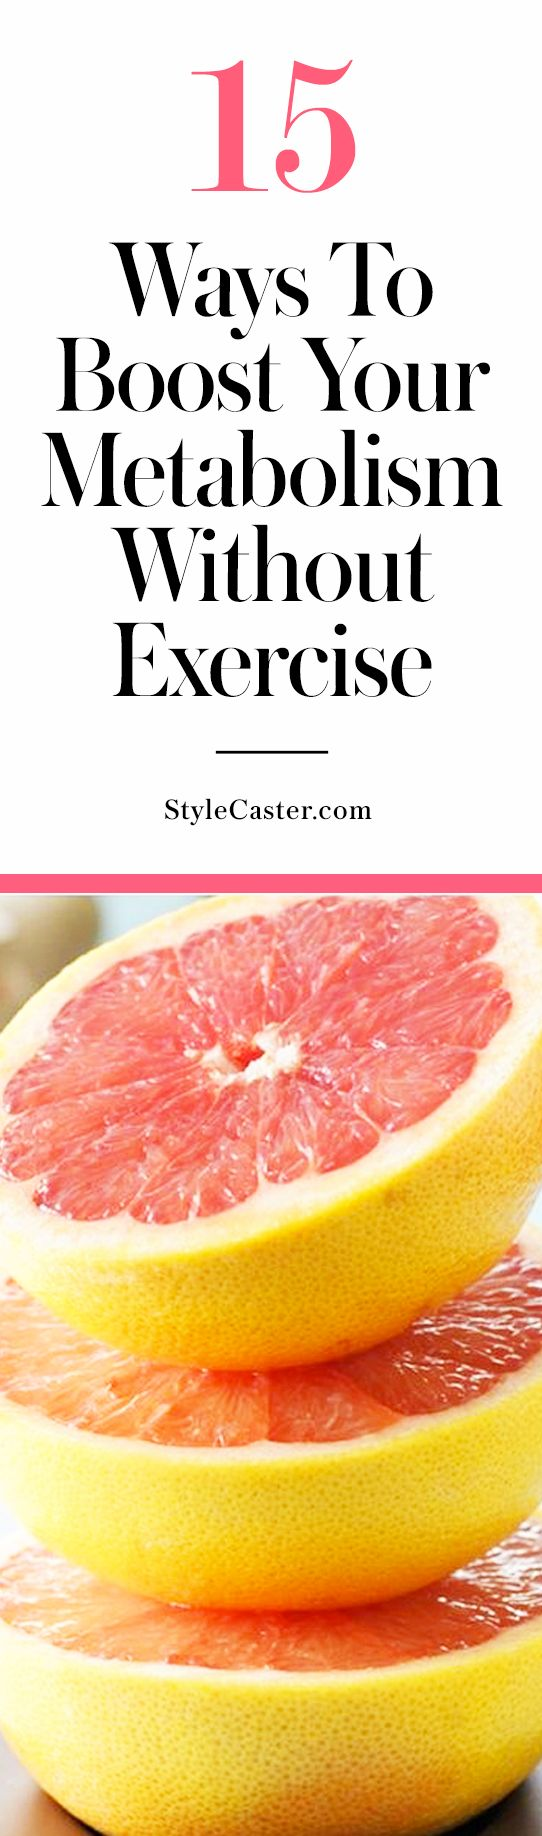 How to boost your metabolism without exercise | @stylecaster